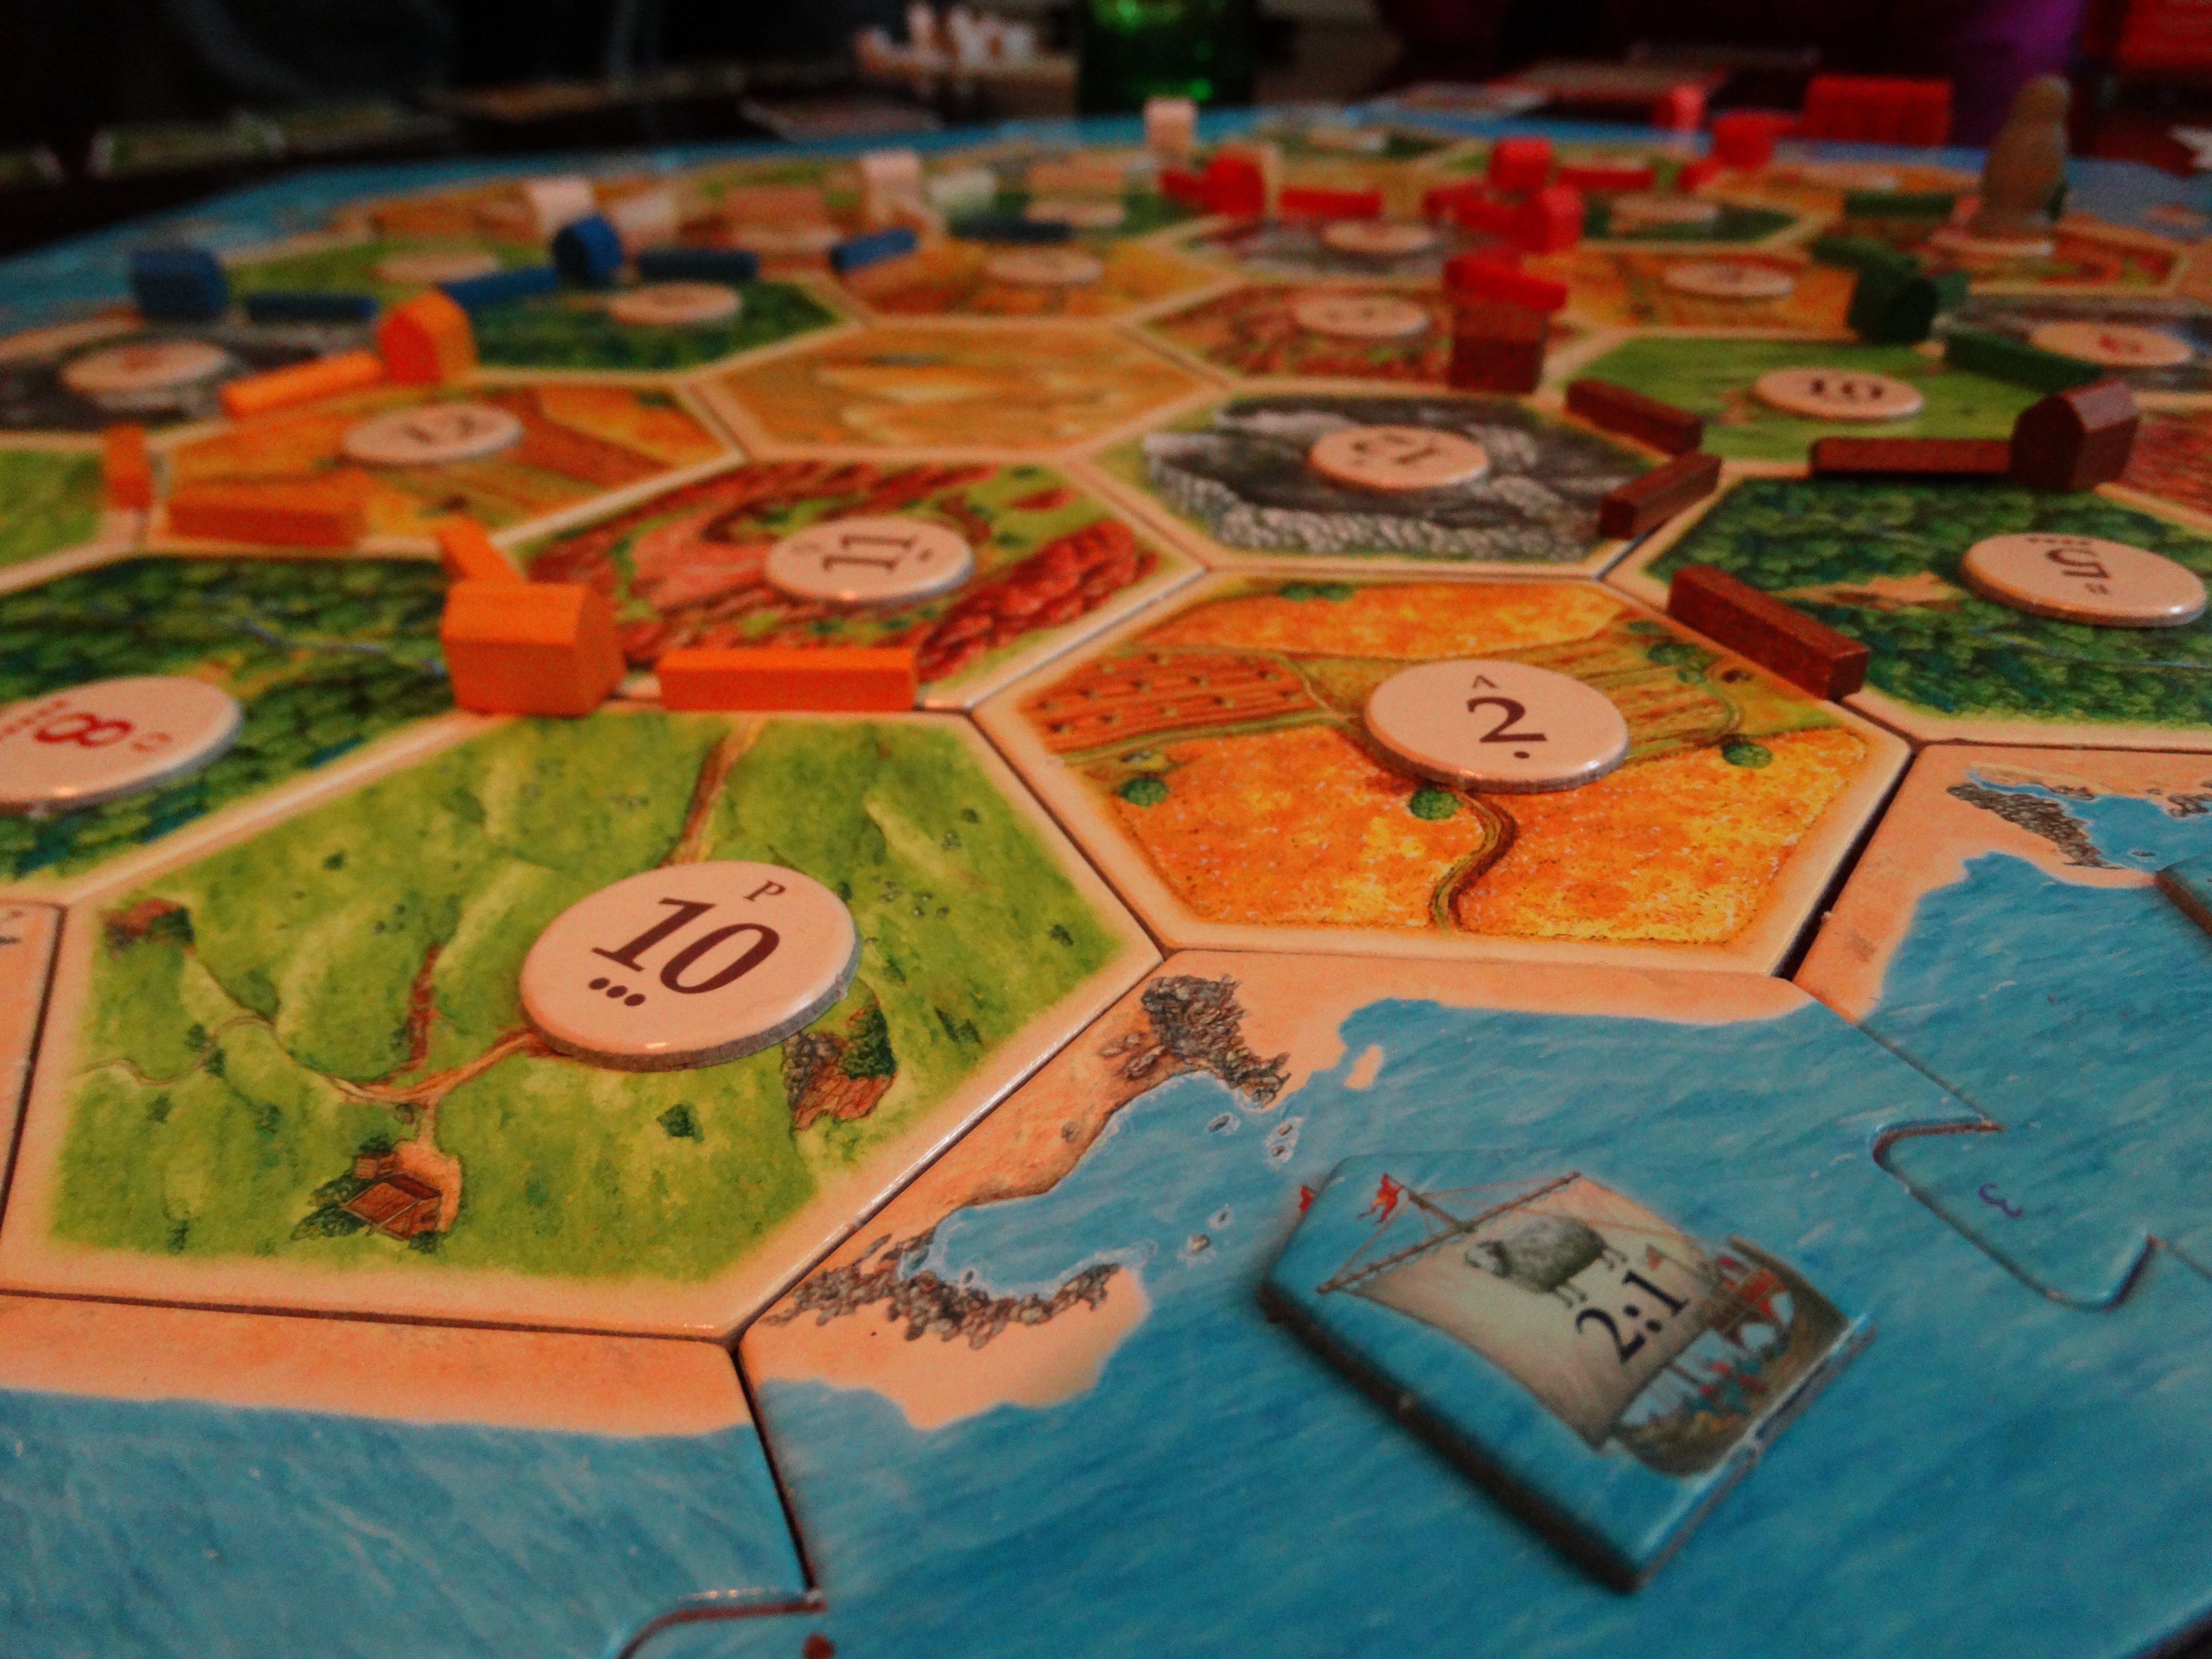 Wood for Sheep? Our New Years Eve Catan-athon Game Night! 8